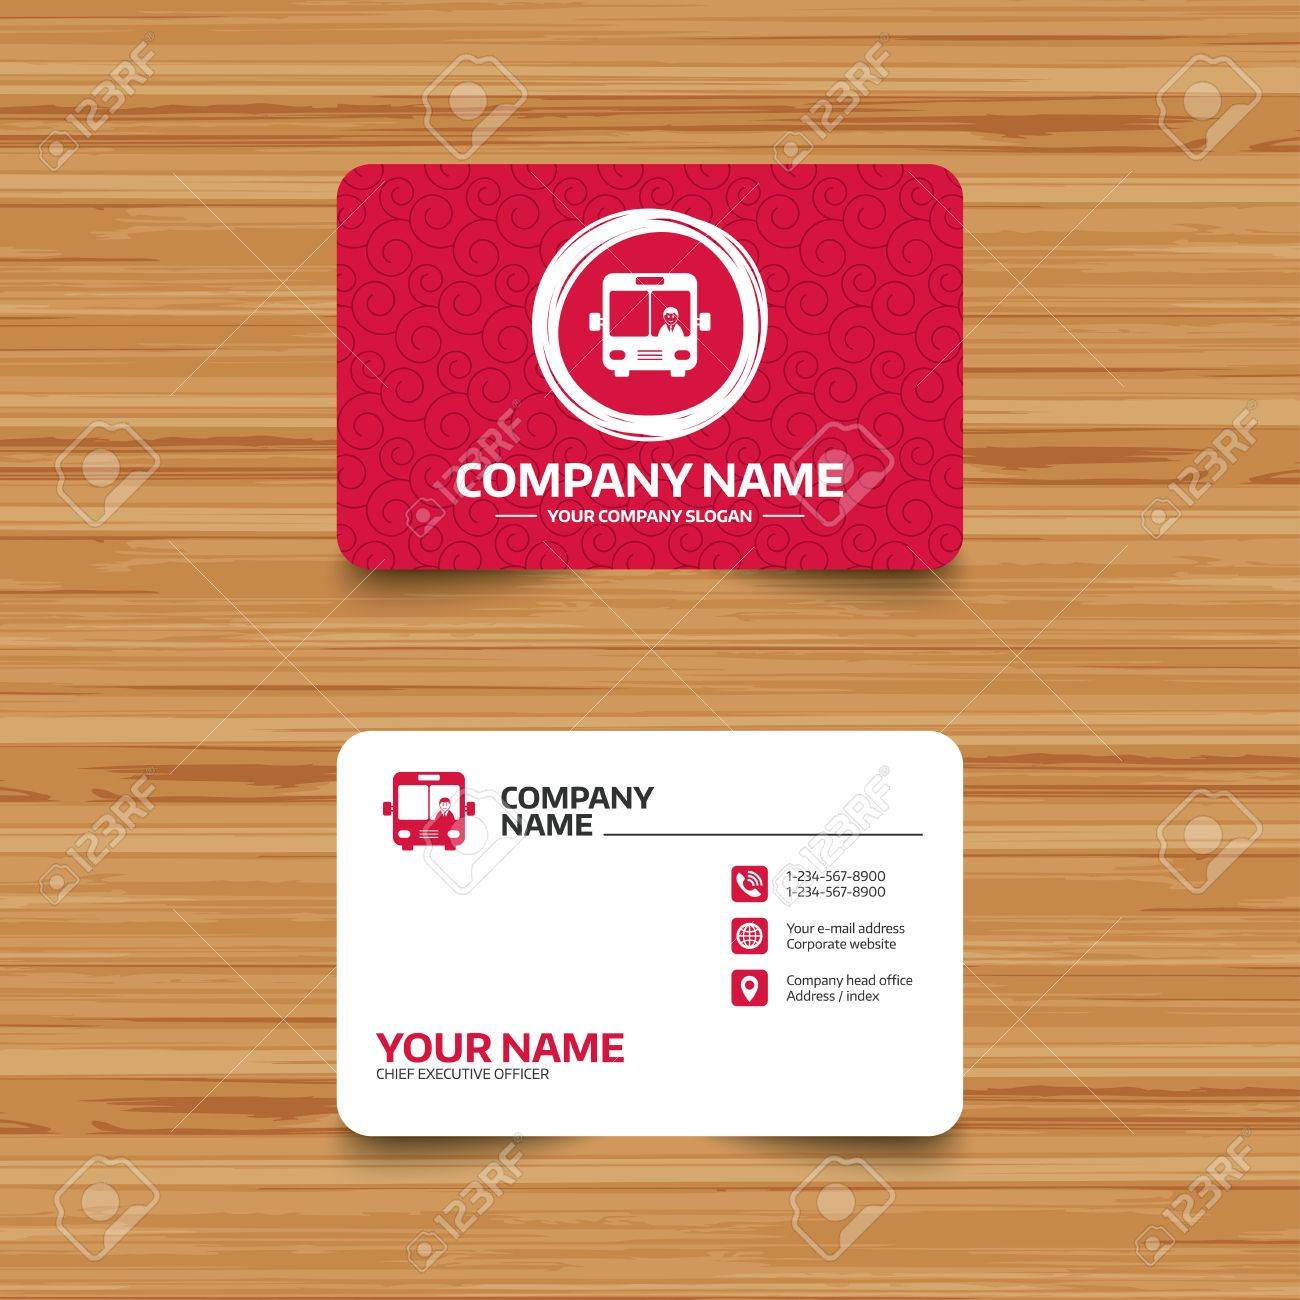 Business card template with texture bus sign icon public transport business card template with texture bus sign icon public transport with driver symbol accmission Choice Image